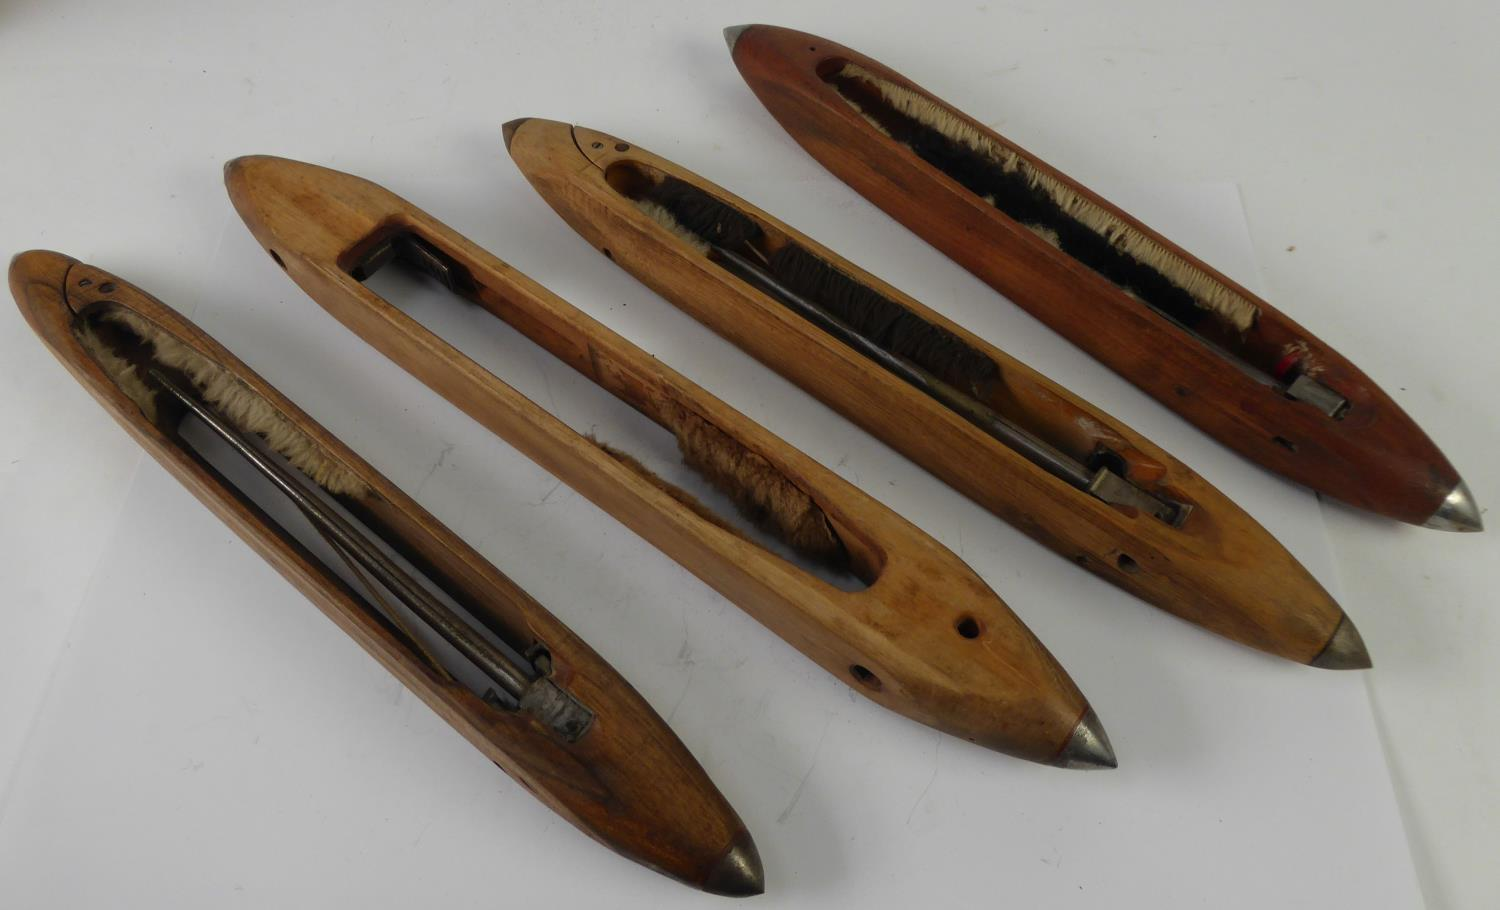 "Lot 448 - THREE ANTIQUE SOFT WOOD SLIDE WHISTLES, 25"", 16 1/2"" AND 14 1/2"" (63.5 x 41.9 x 36.8cm)"